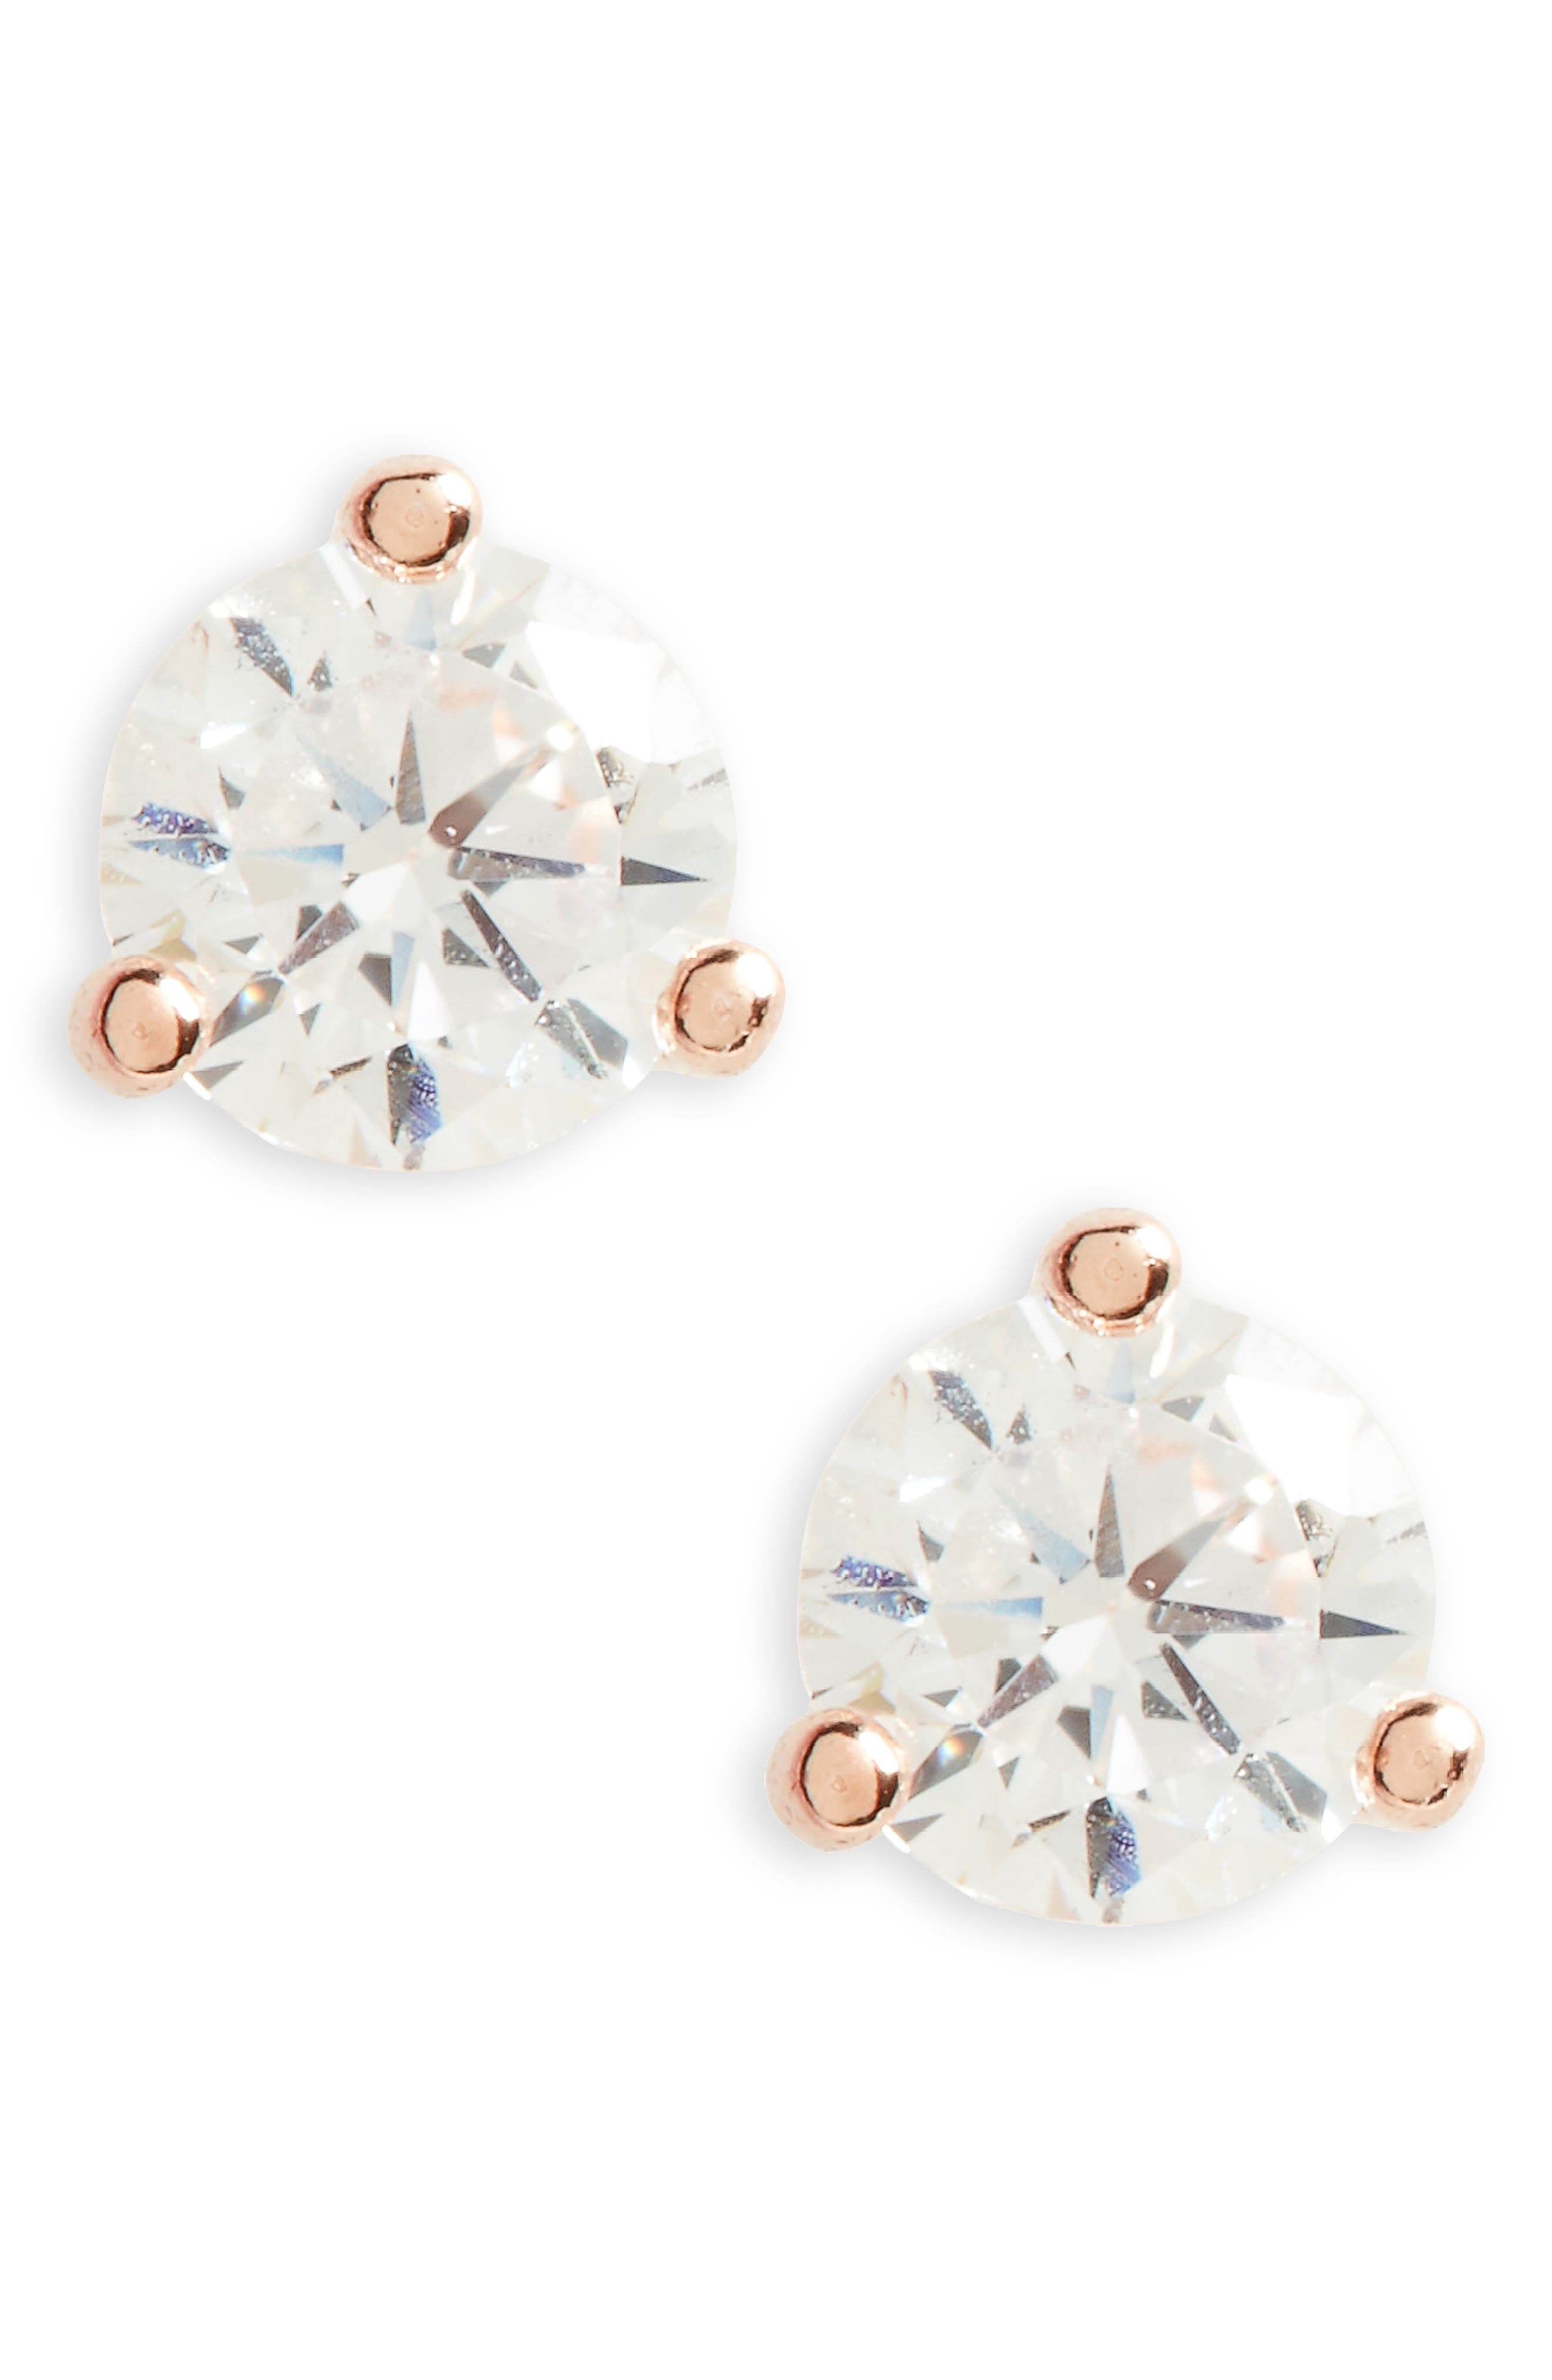 0.25ct tw Cubic Zirconia Stud Earrings,                         Main,                         color, CLEAR- ROSE GOLD